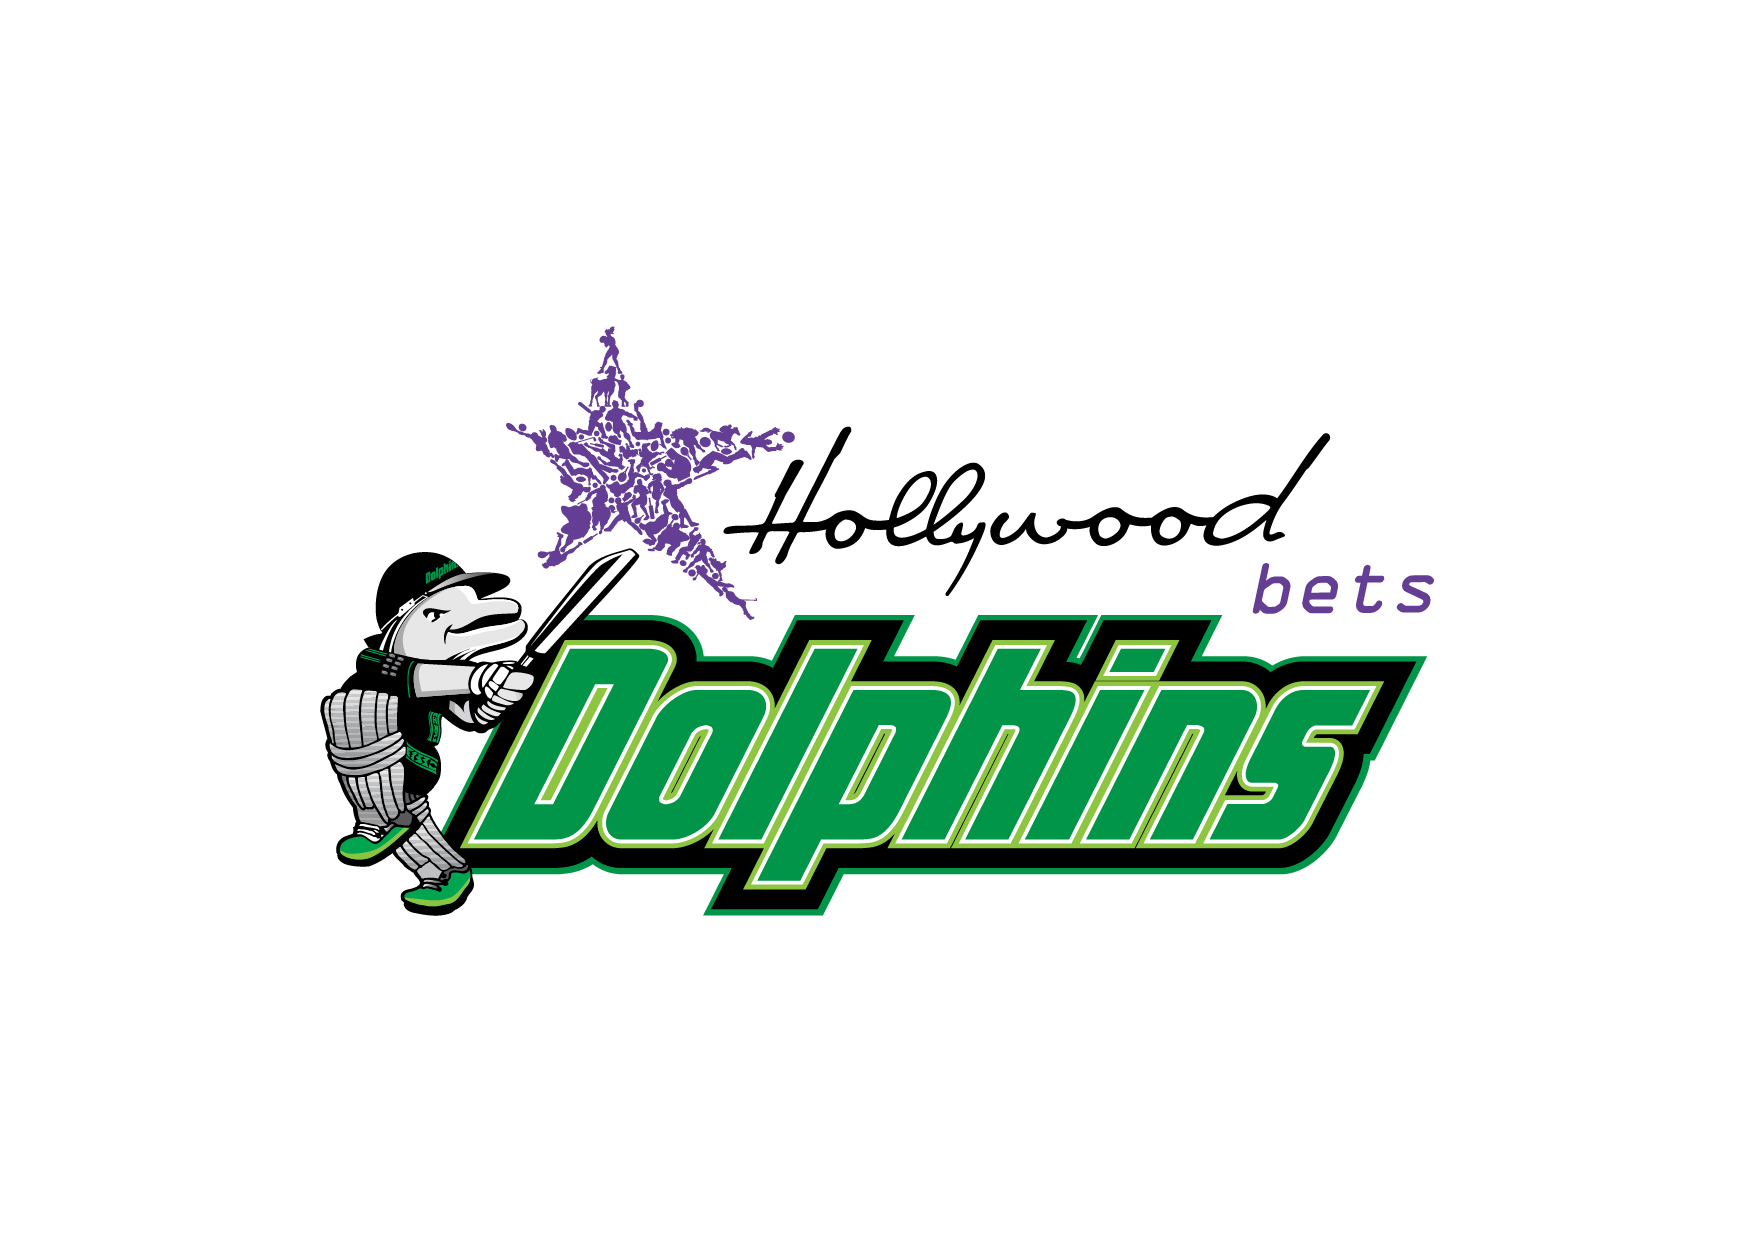 Dolphins dominate day one against the Warriors